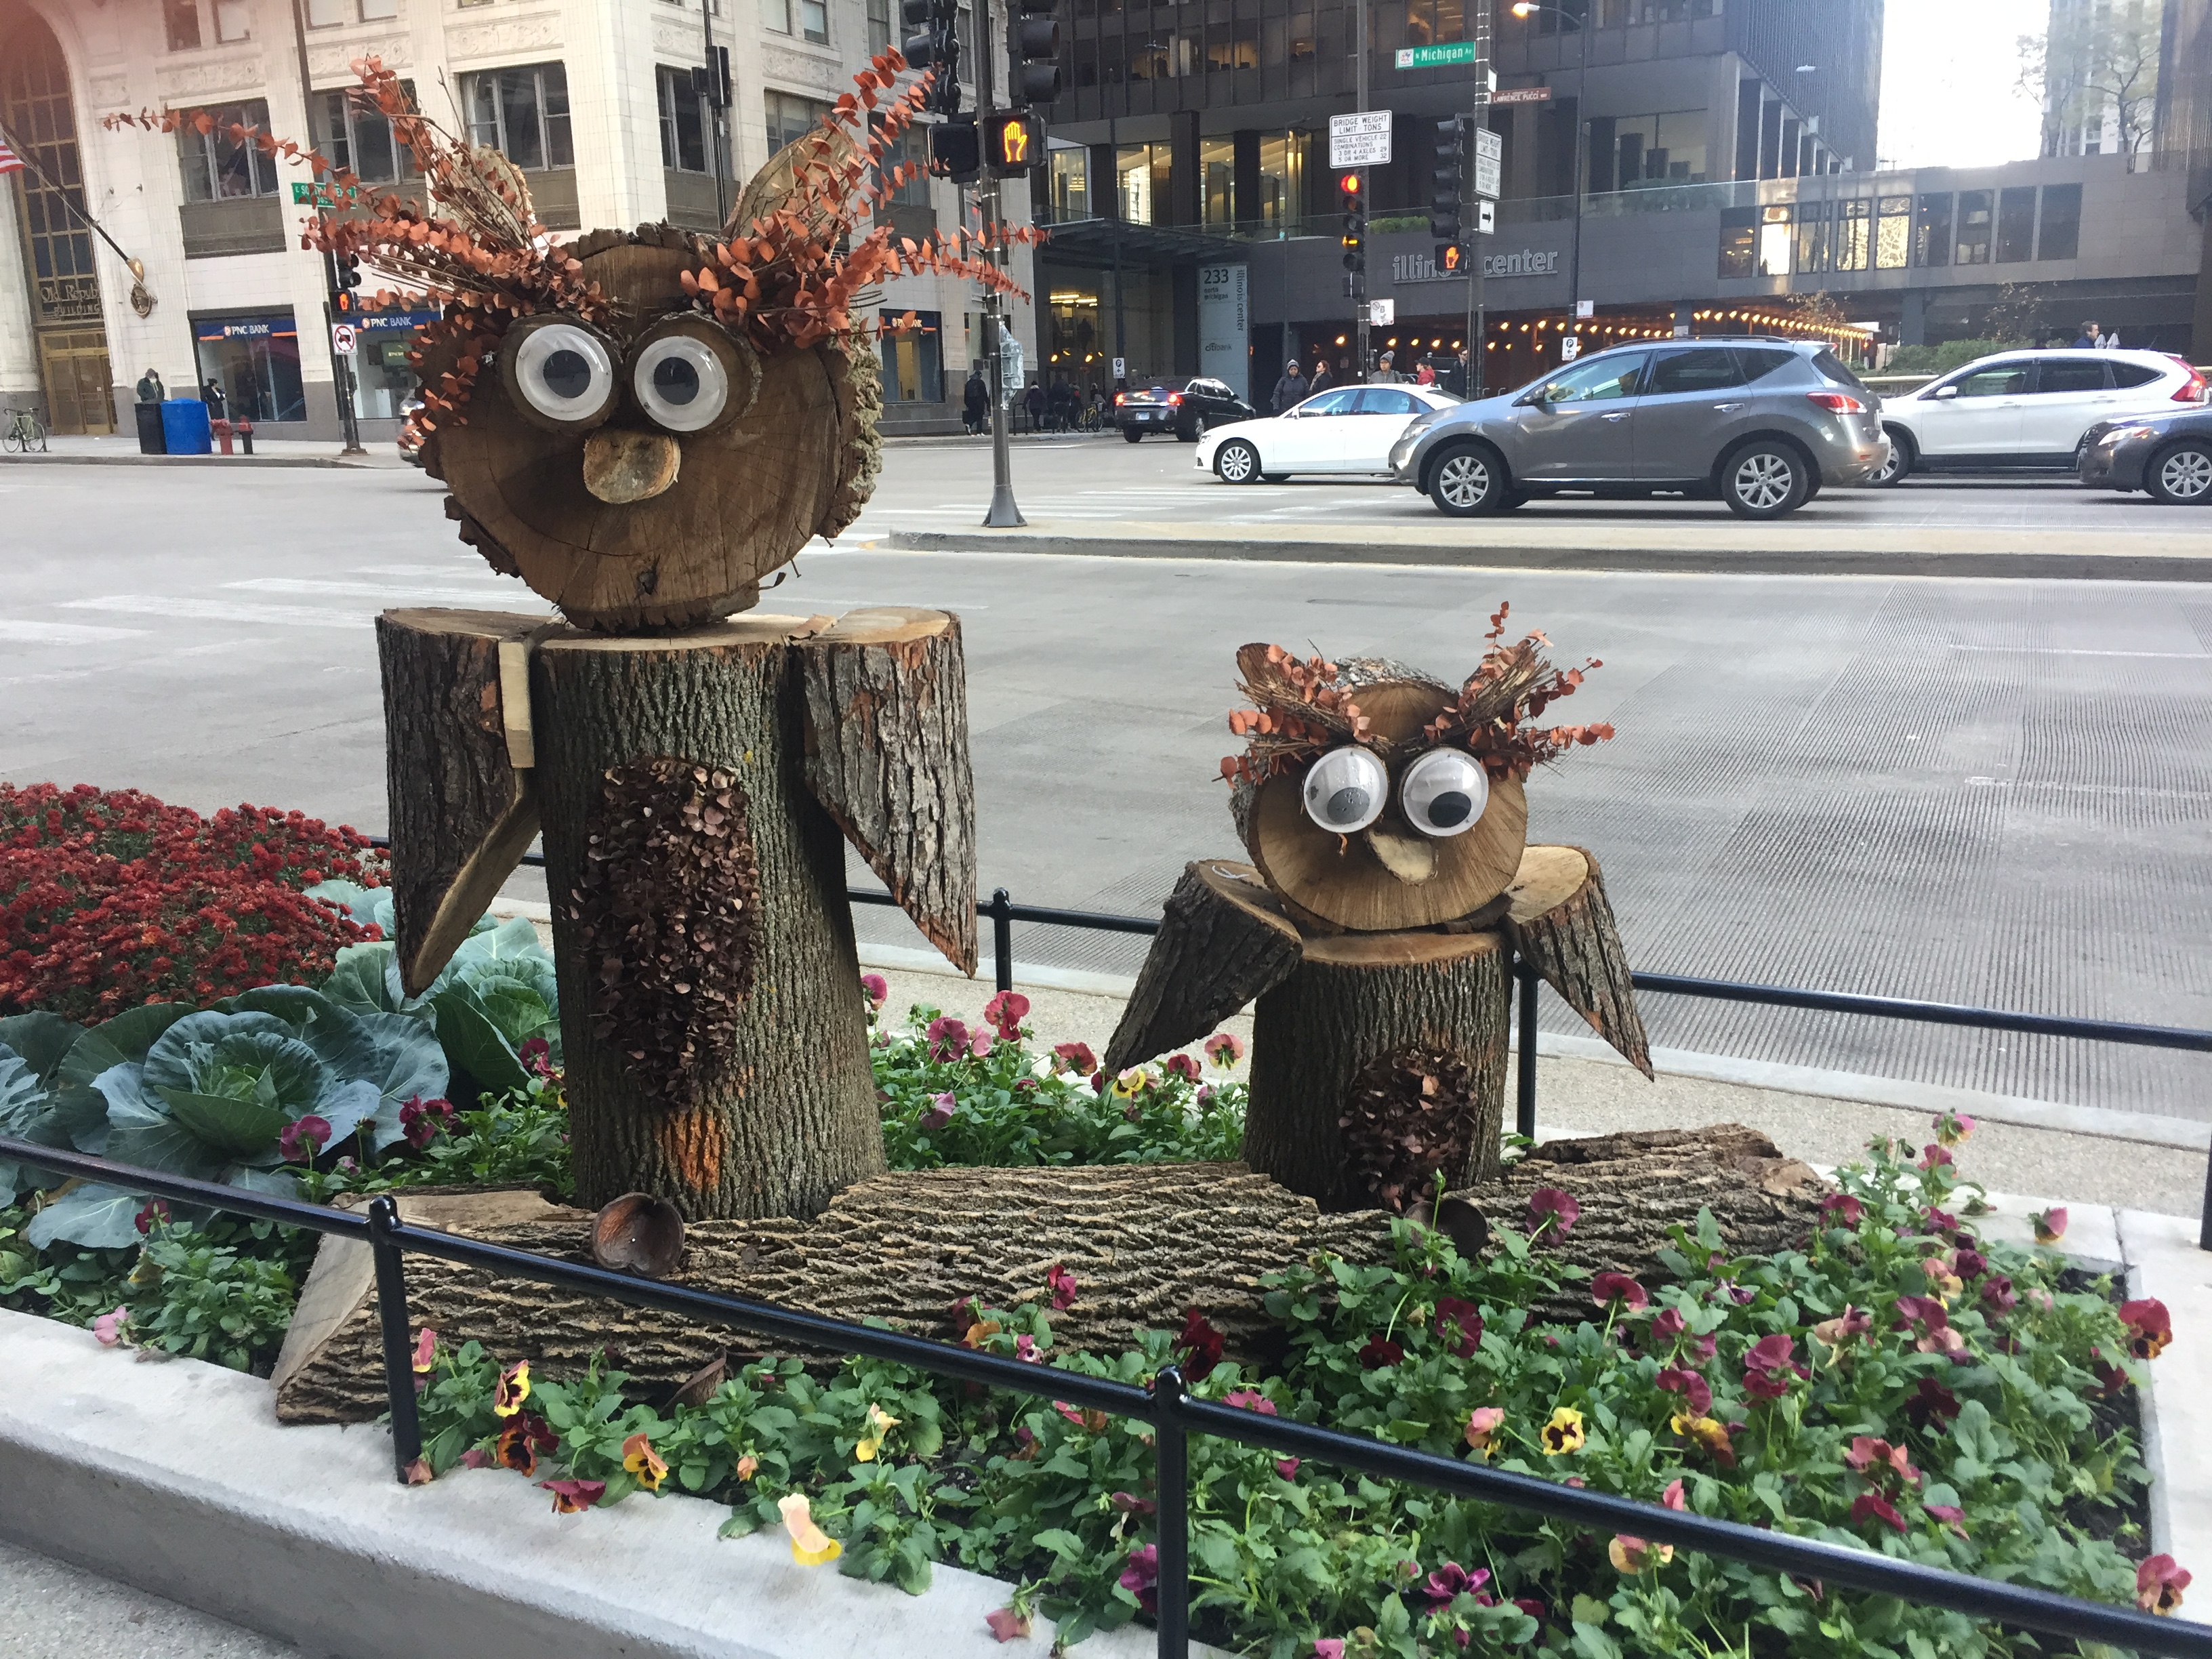 Owls in Chicago 1